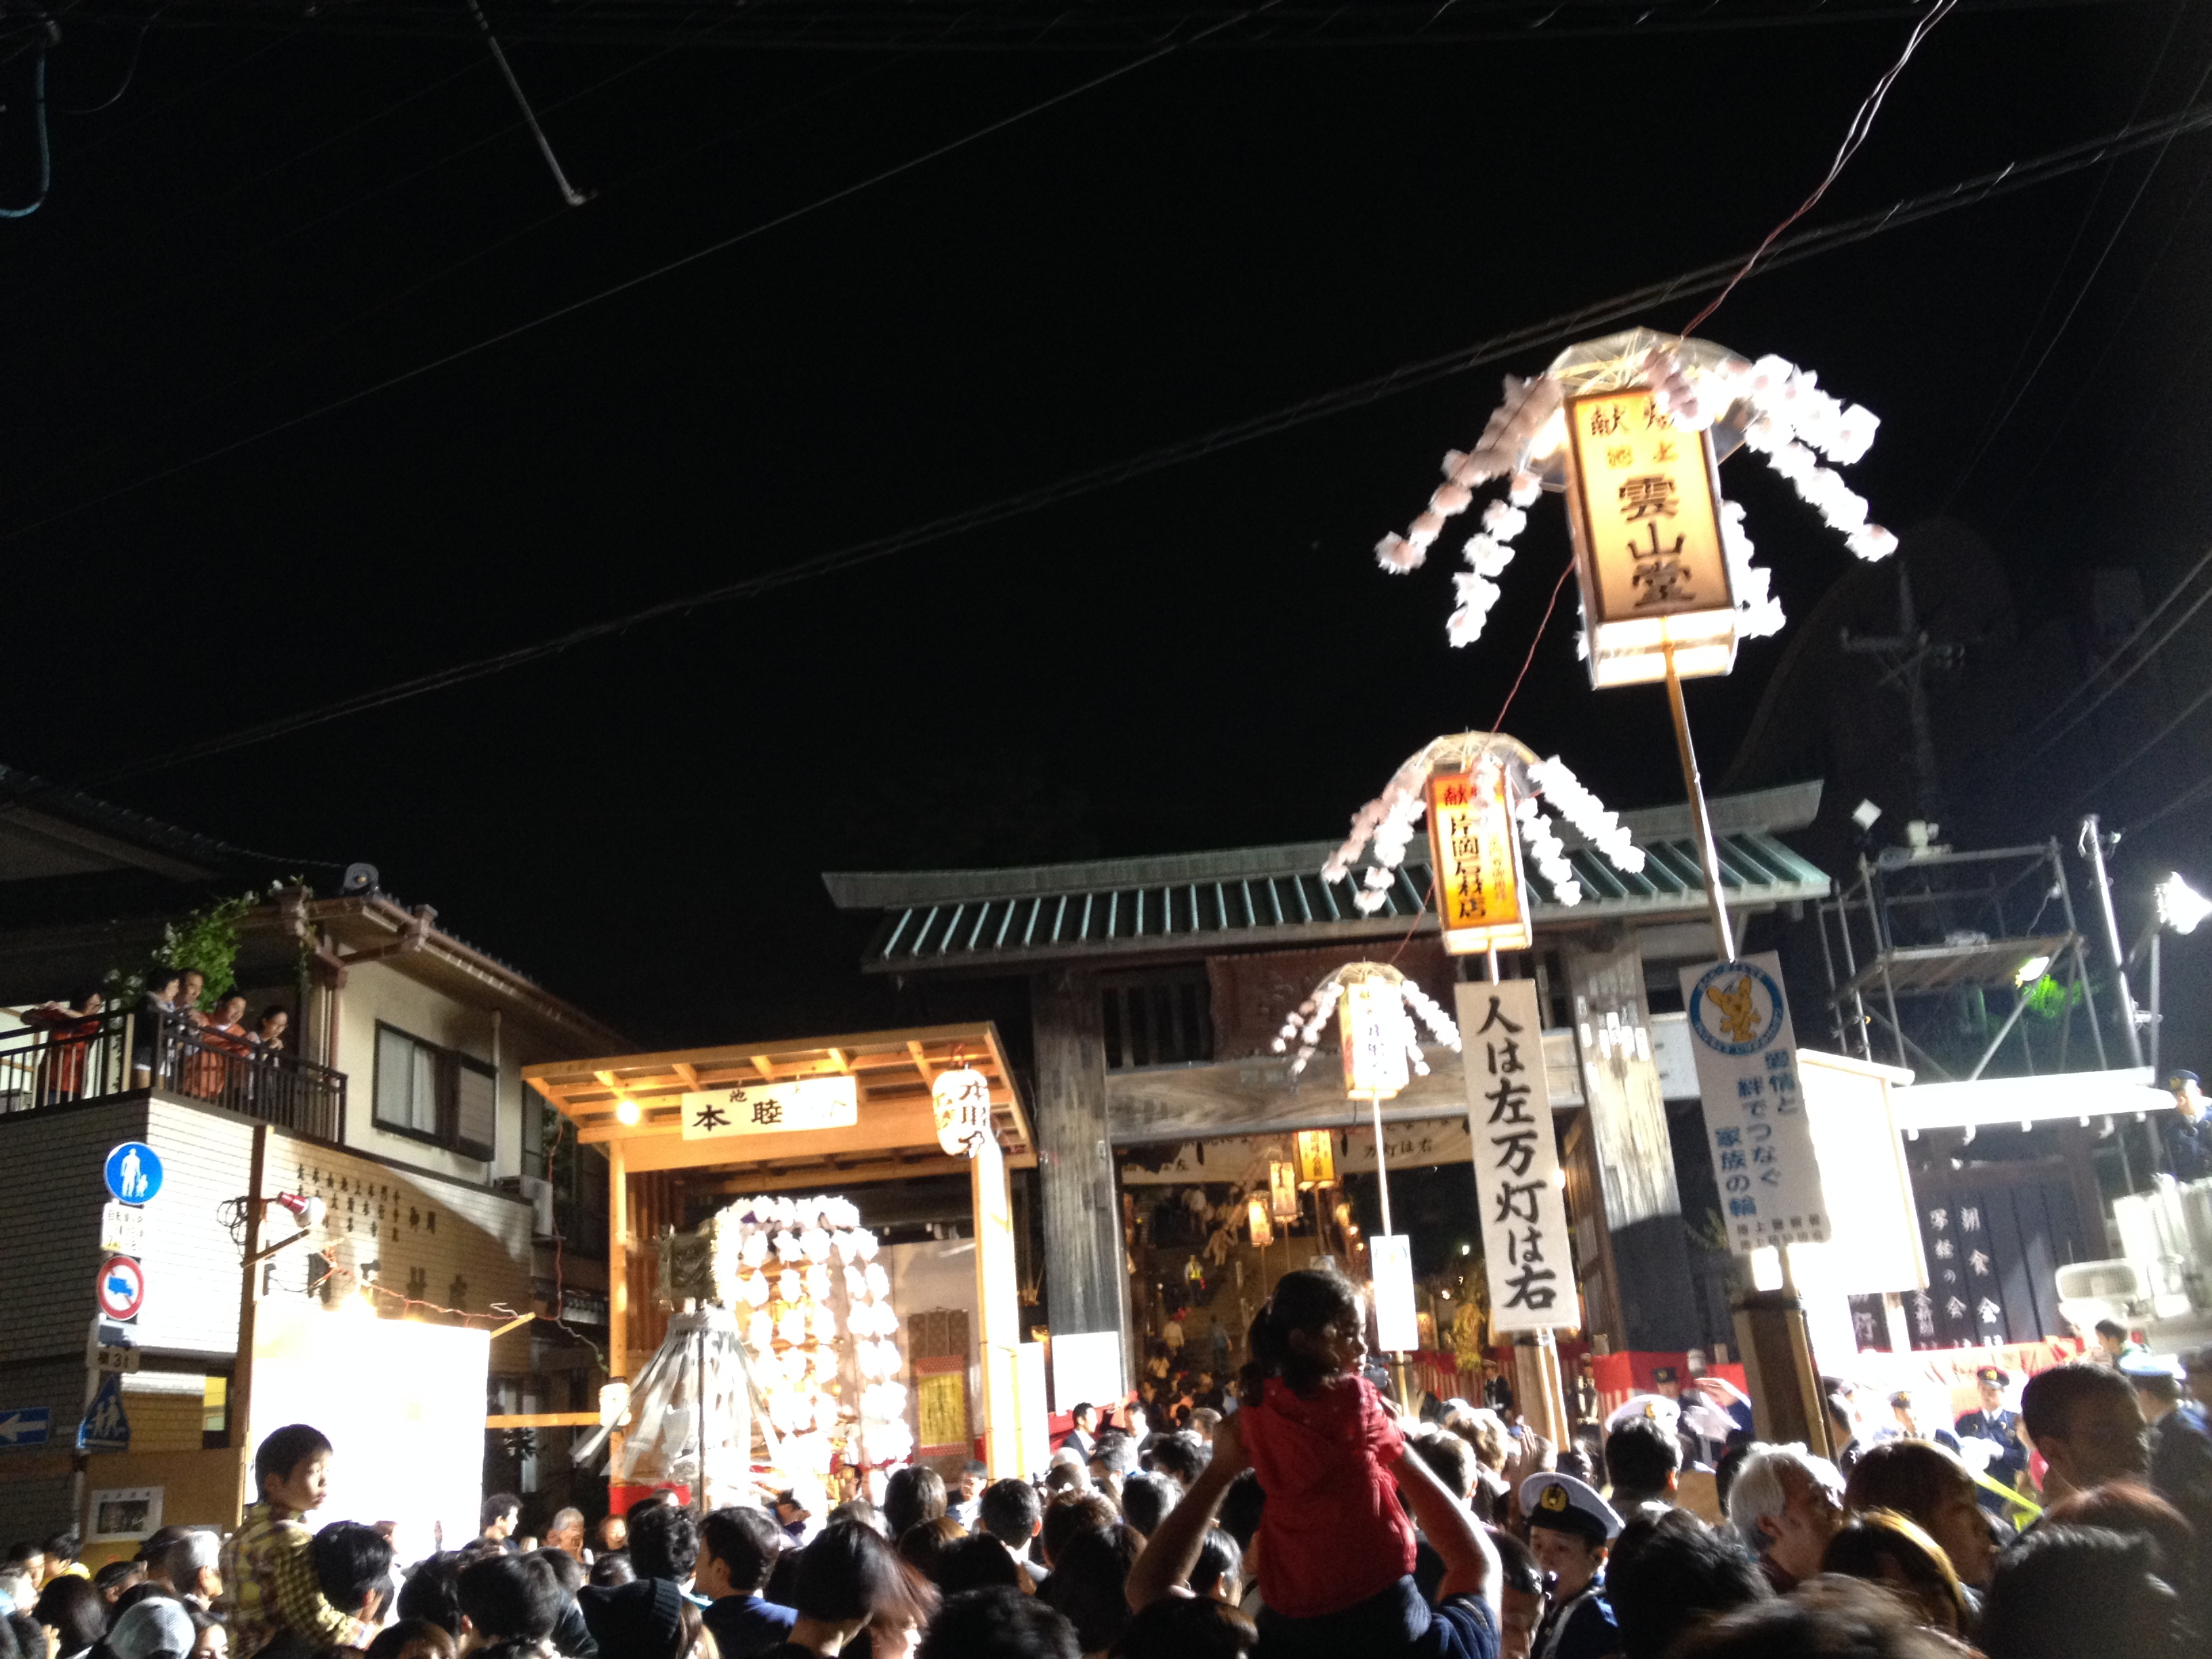 Ikegami Festivals Draws Crowds with Traditional Ceremonies